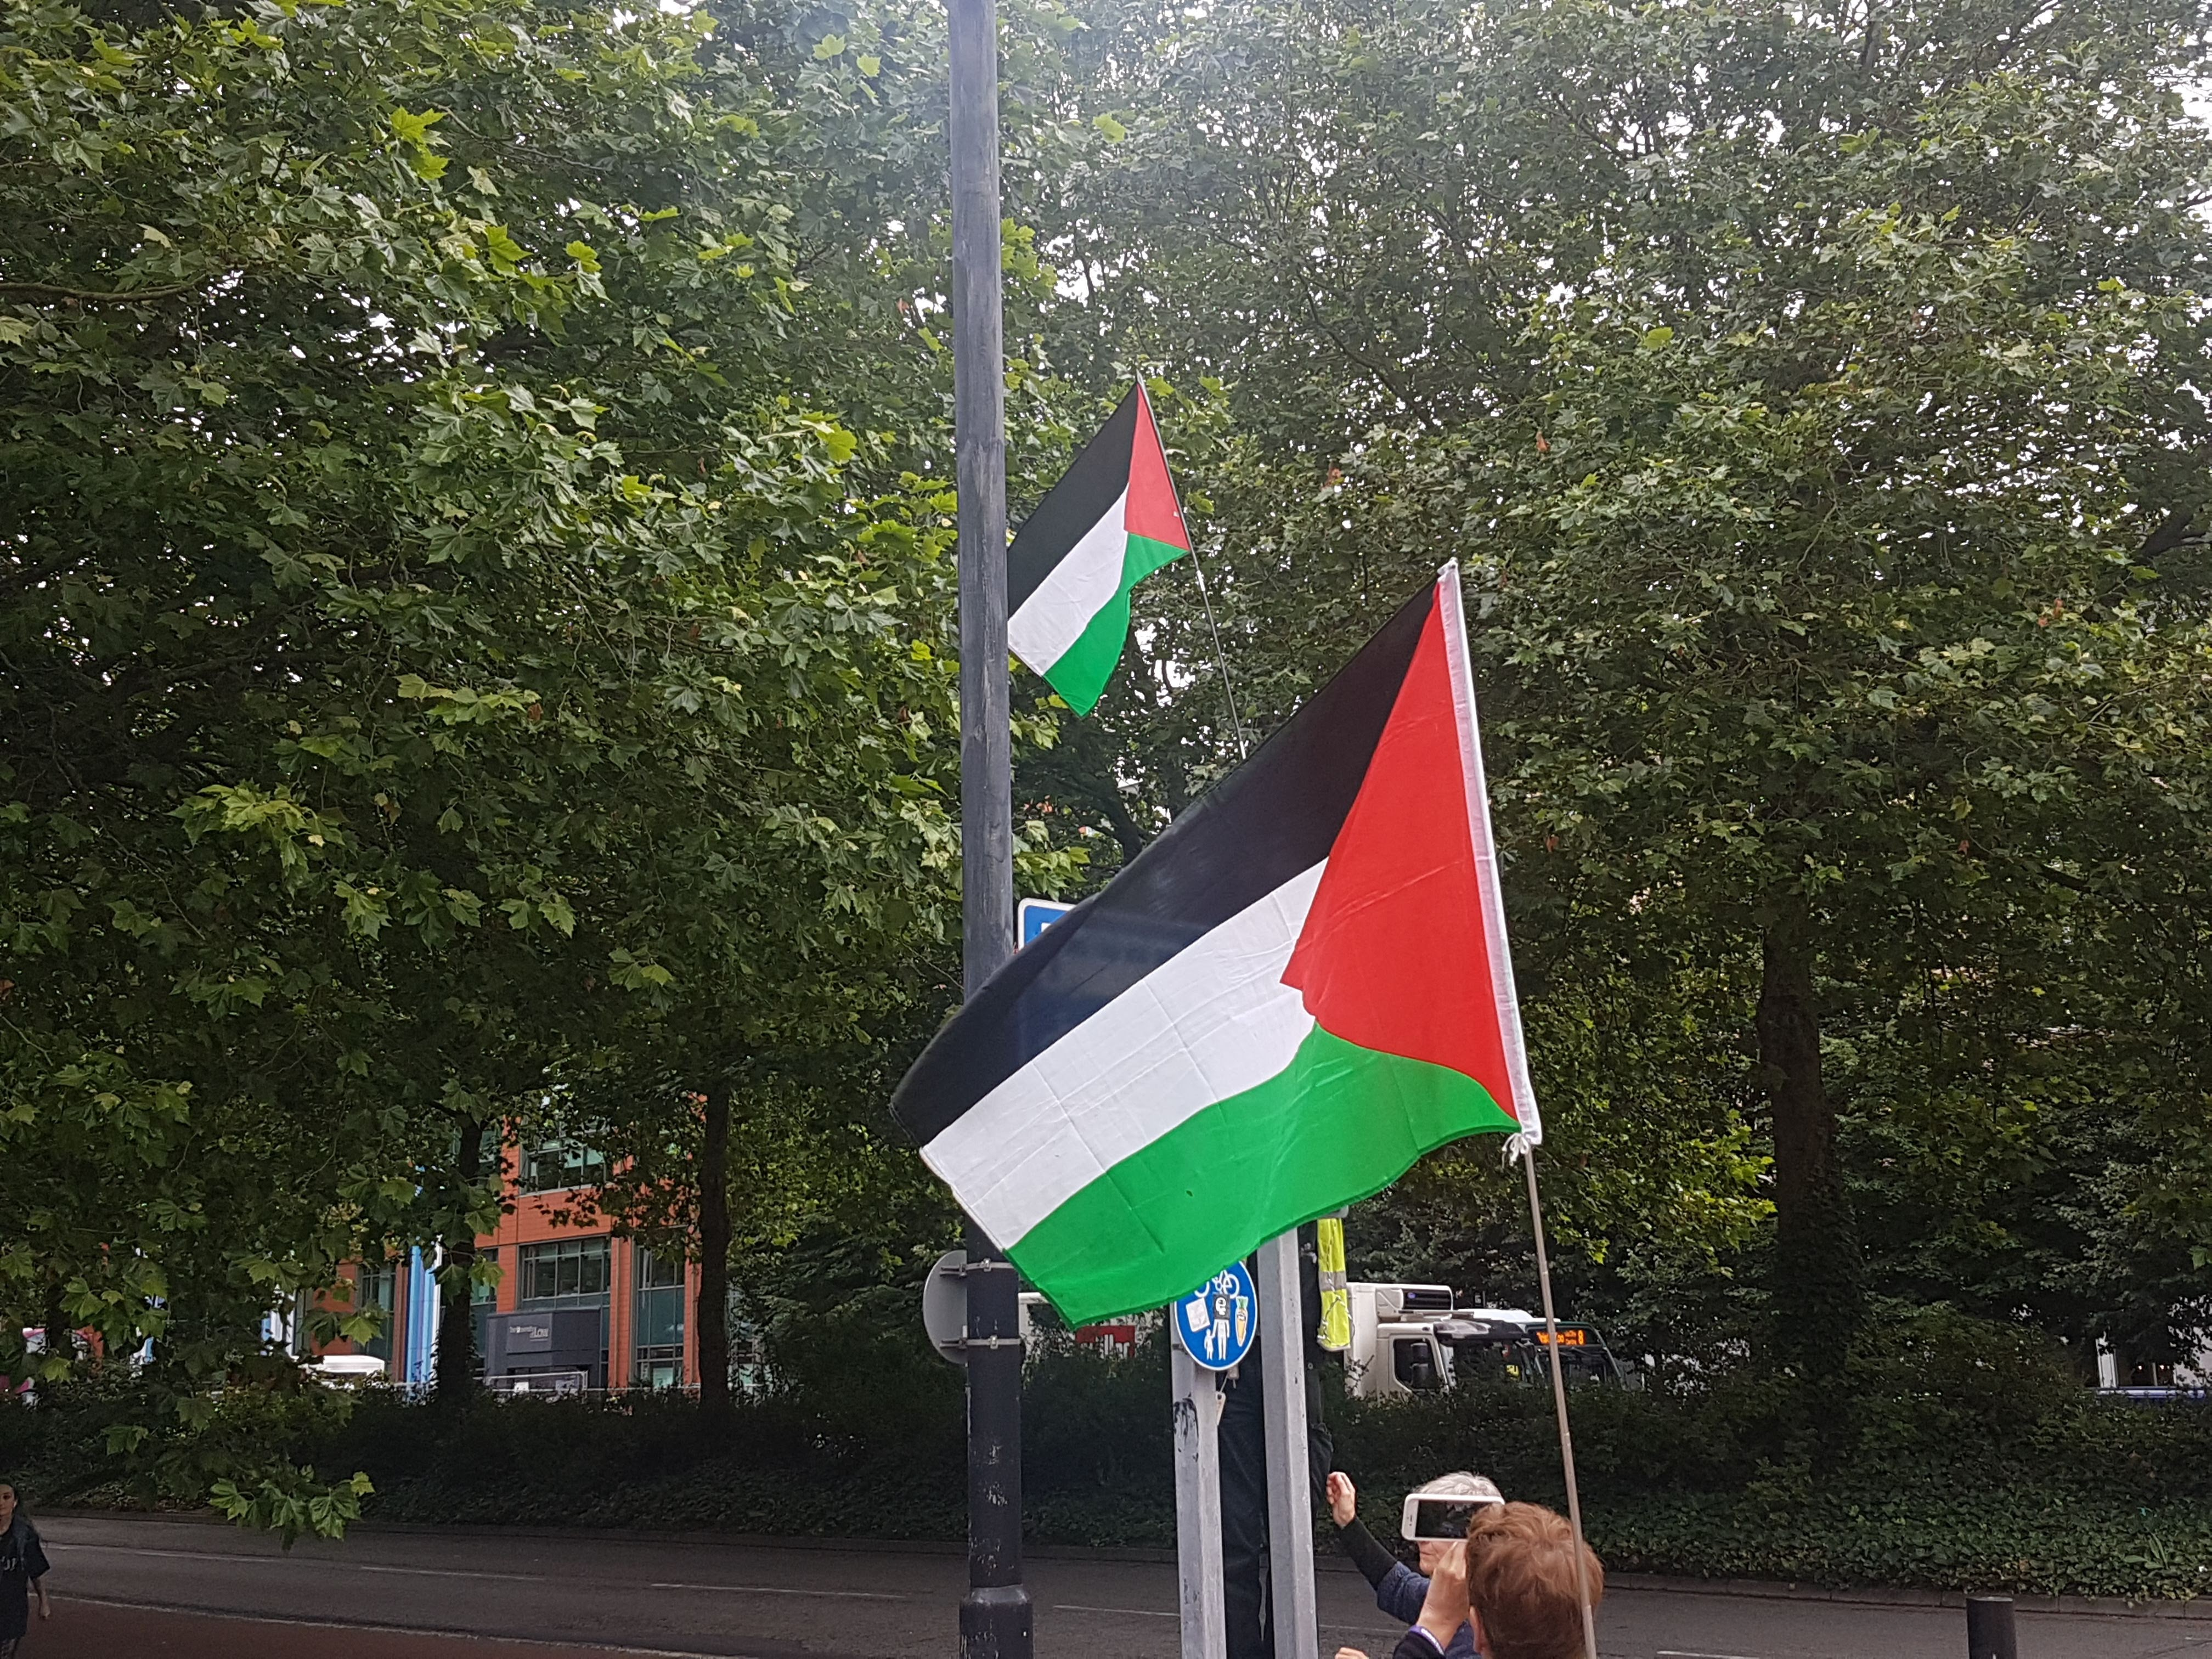 A Palestinian flag raised above a road sign.